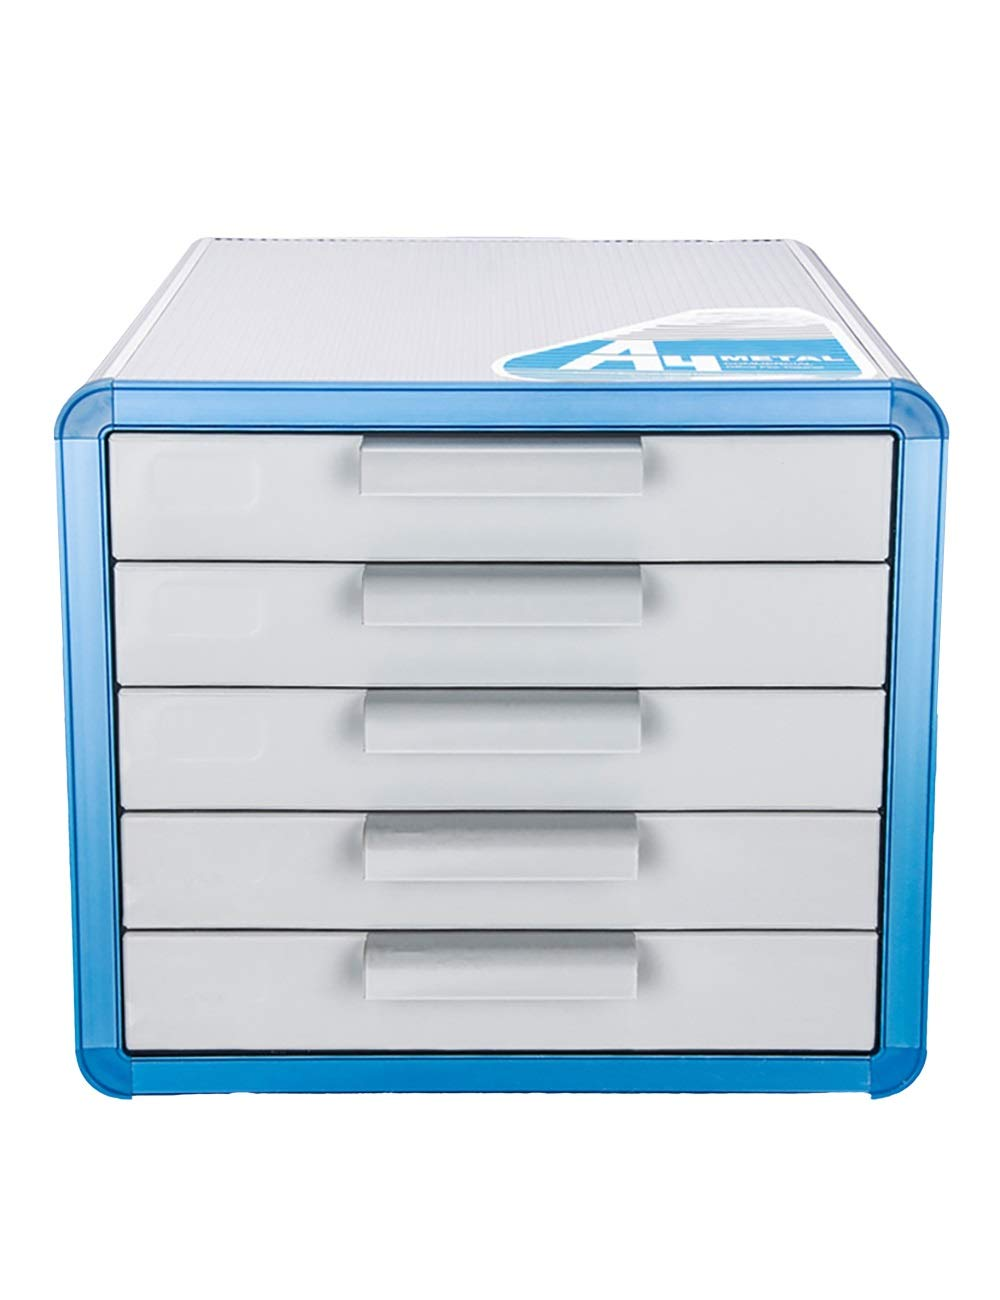 File Cabinet Family Office Desktop Cabinet Storage Cabinet 5 Drawers File Storage Cabinet Aluminum Alloy, Medium Fiber Board 286x346x253mm Filing cabinets